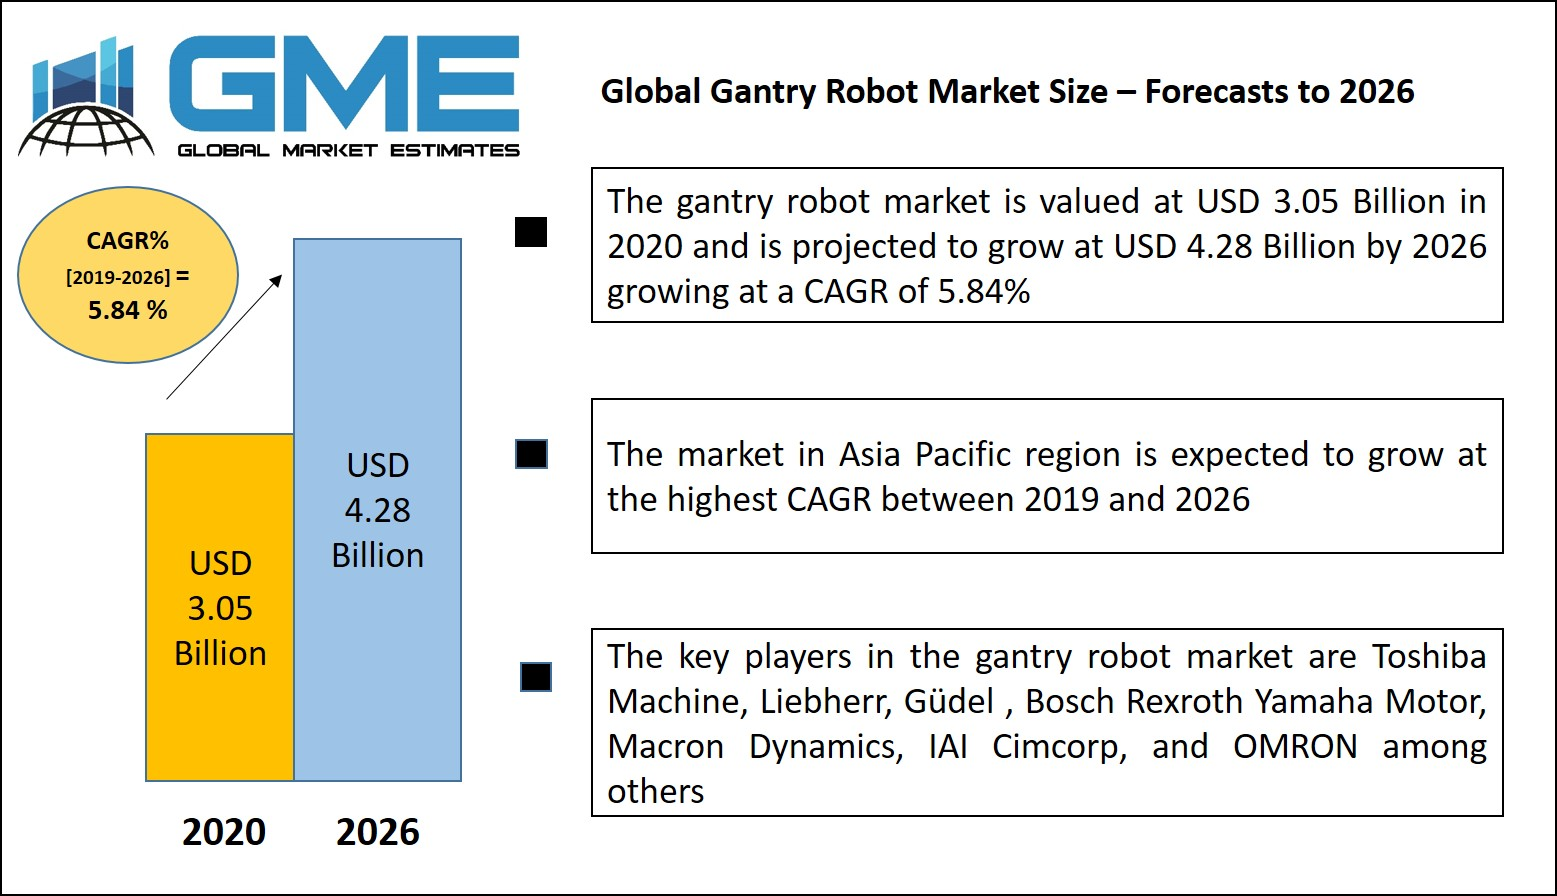 Global Gantry Robot Market Size – Forecasts to 2026